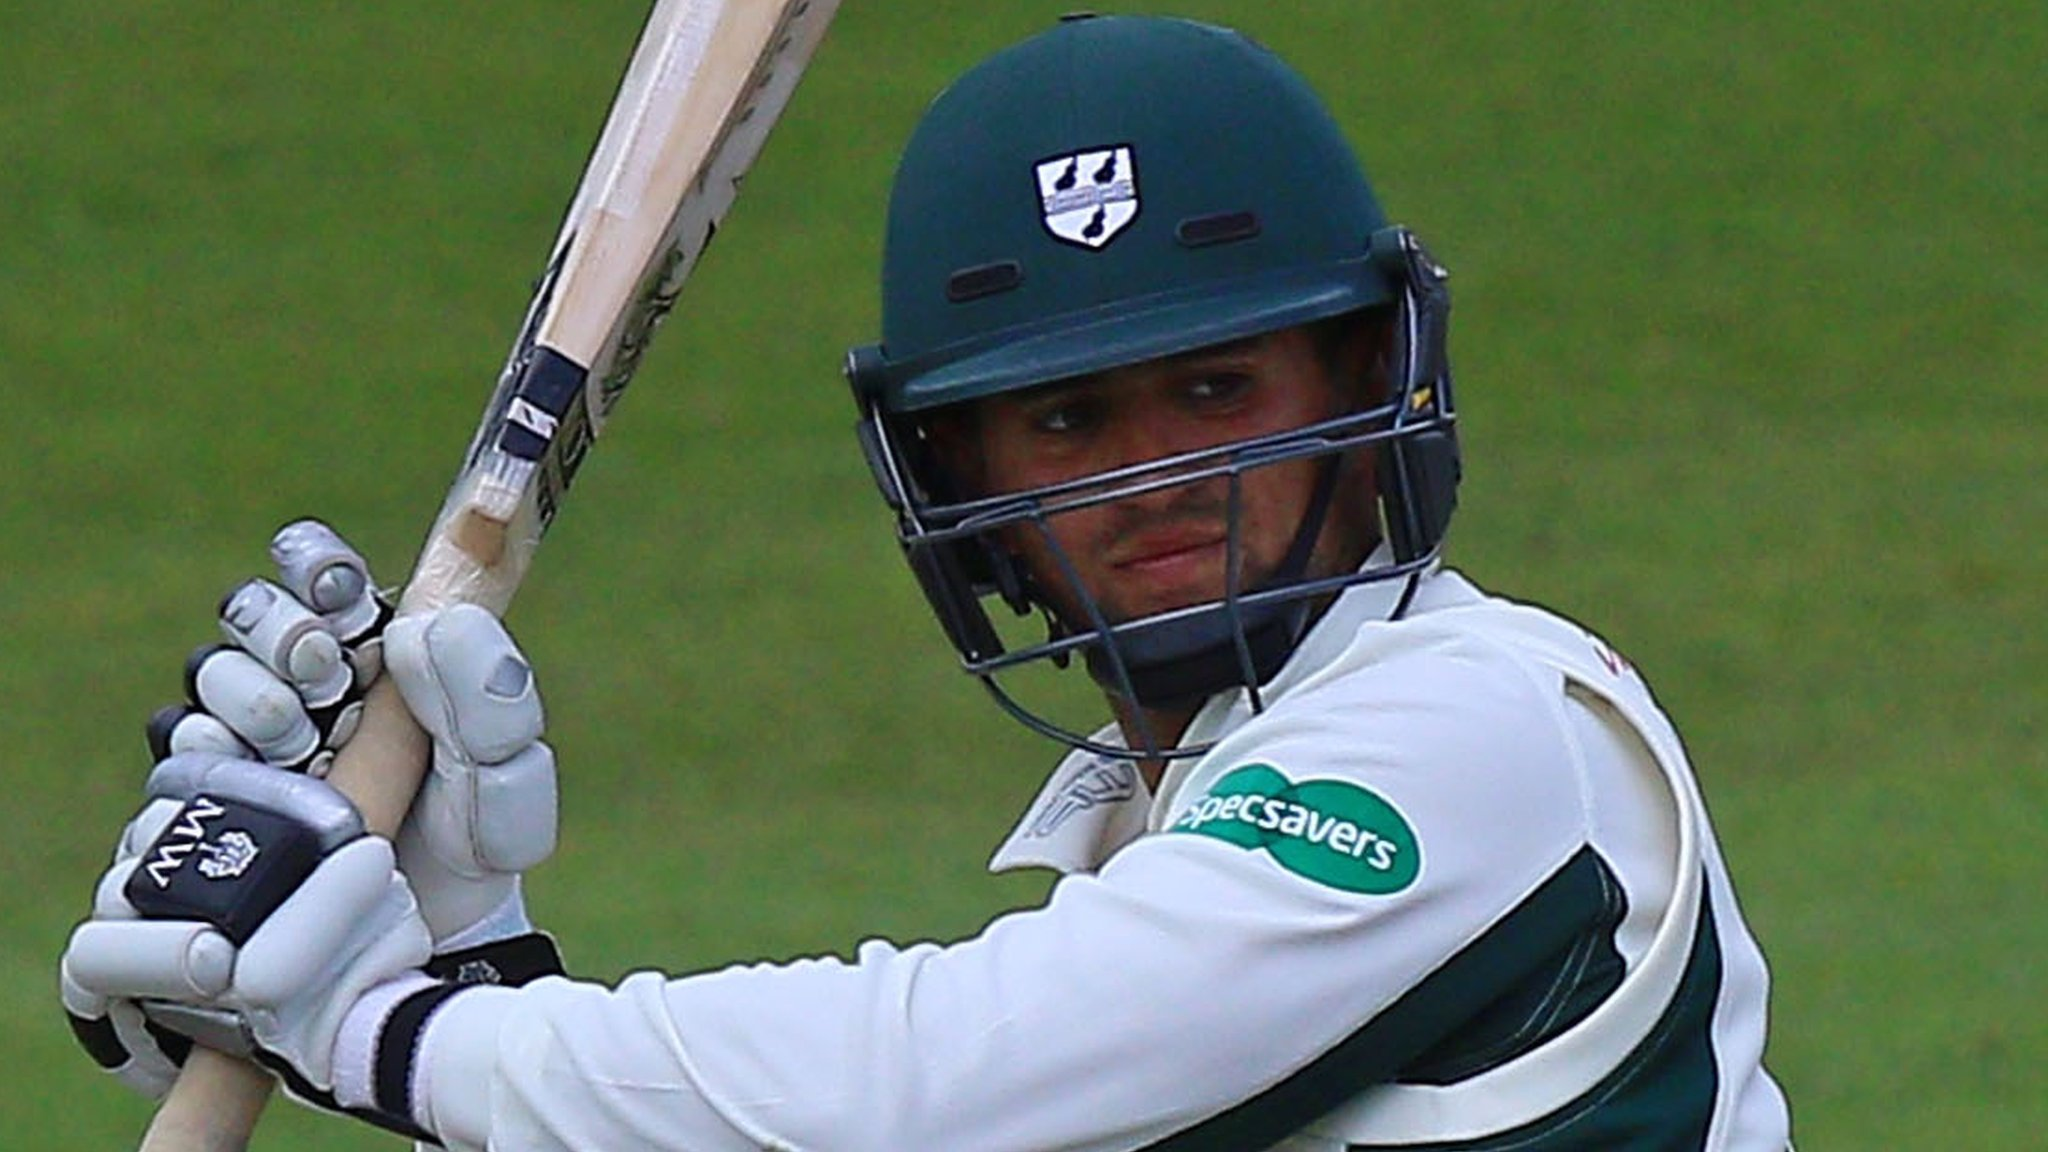 Worcestershire: Brett D'Oliveira appointed as captain for three Championship games